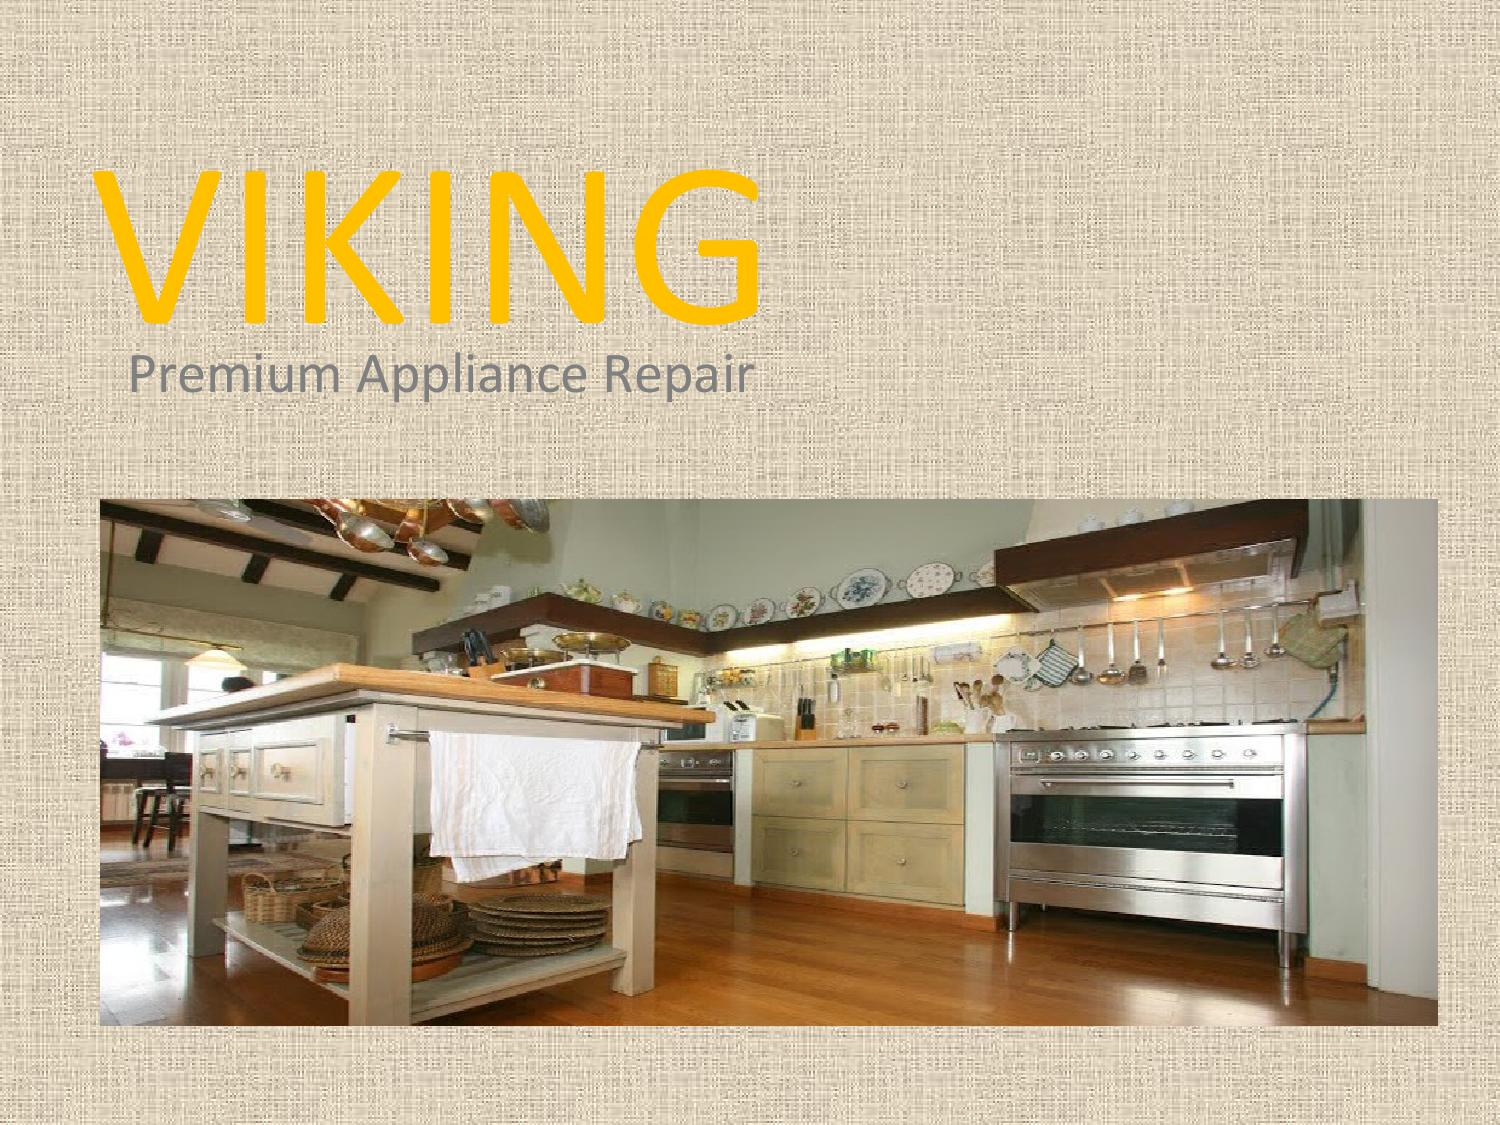 Appliance Repair Services In Toronto By Viking Premium